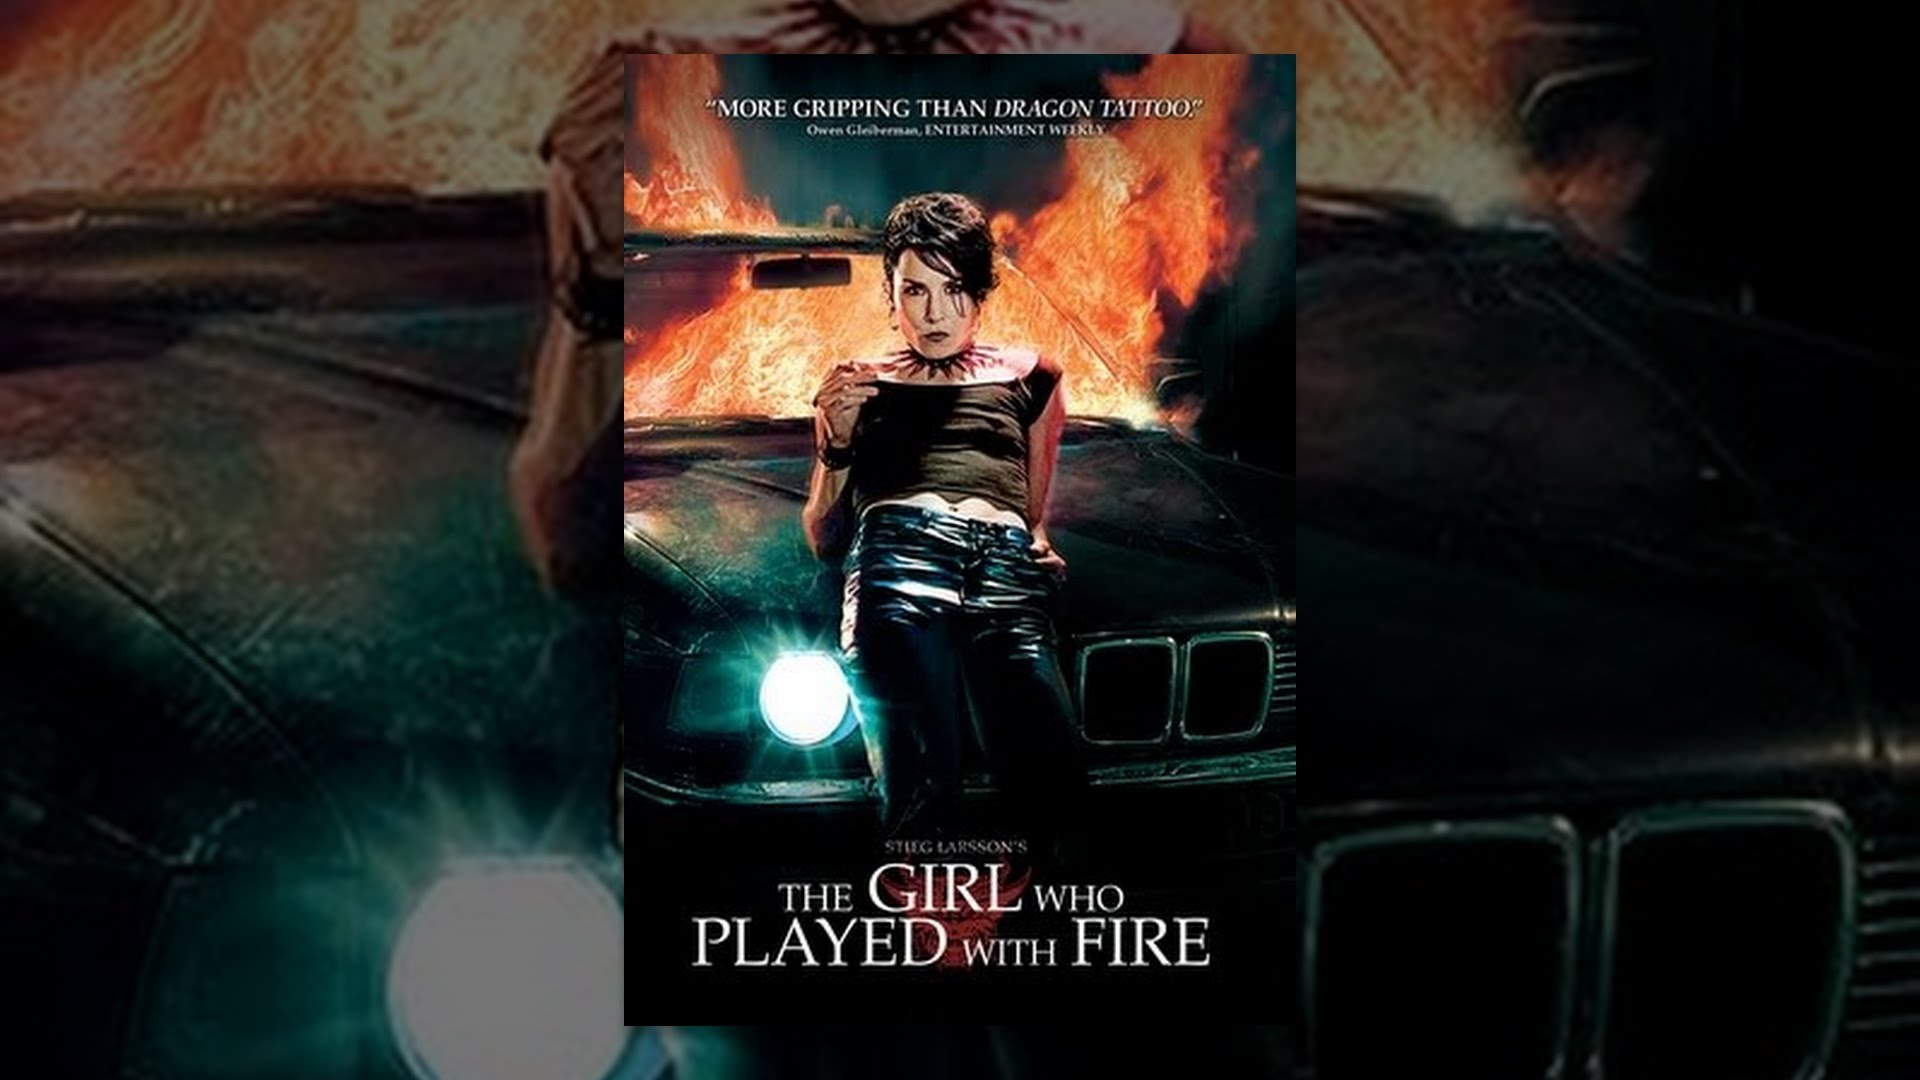 the girl who played with fire movie online putlockers